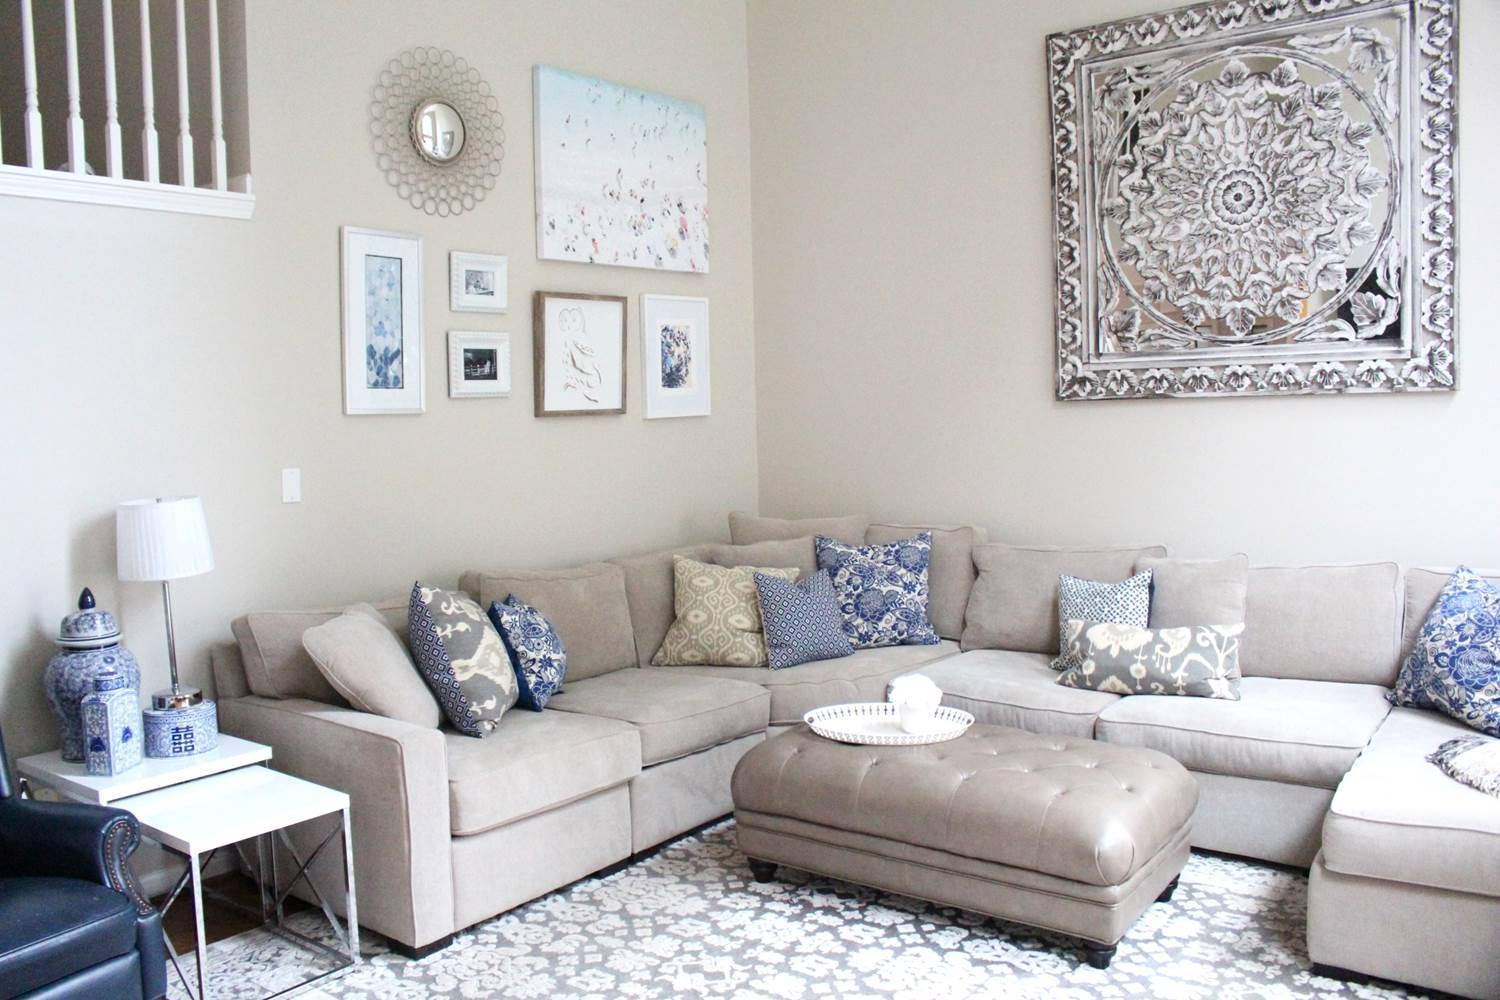 Splendid Wall Art For Small Living Room Decoration Complete In Most Recent Blue And Silver Wall Art (View 7 of 20)